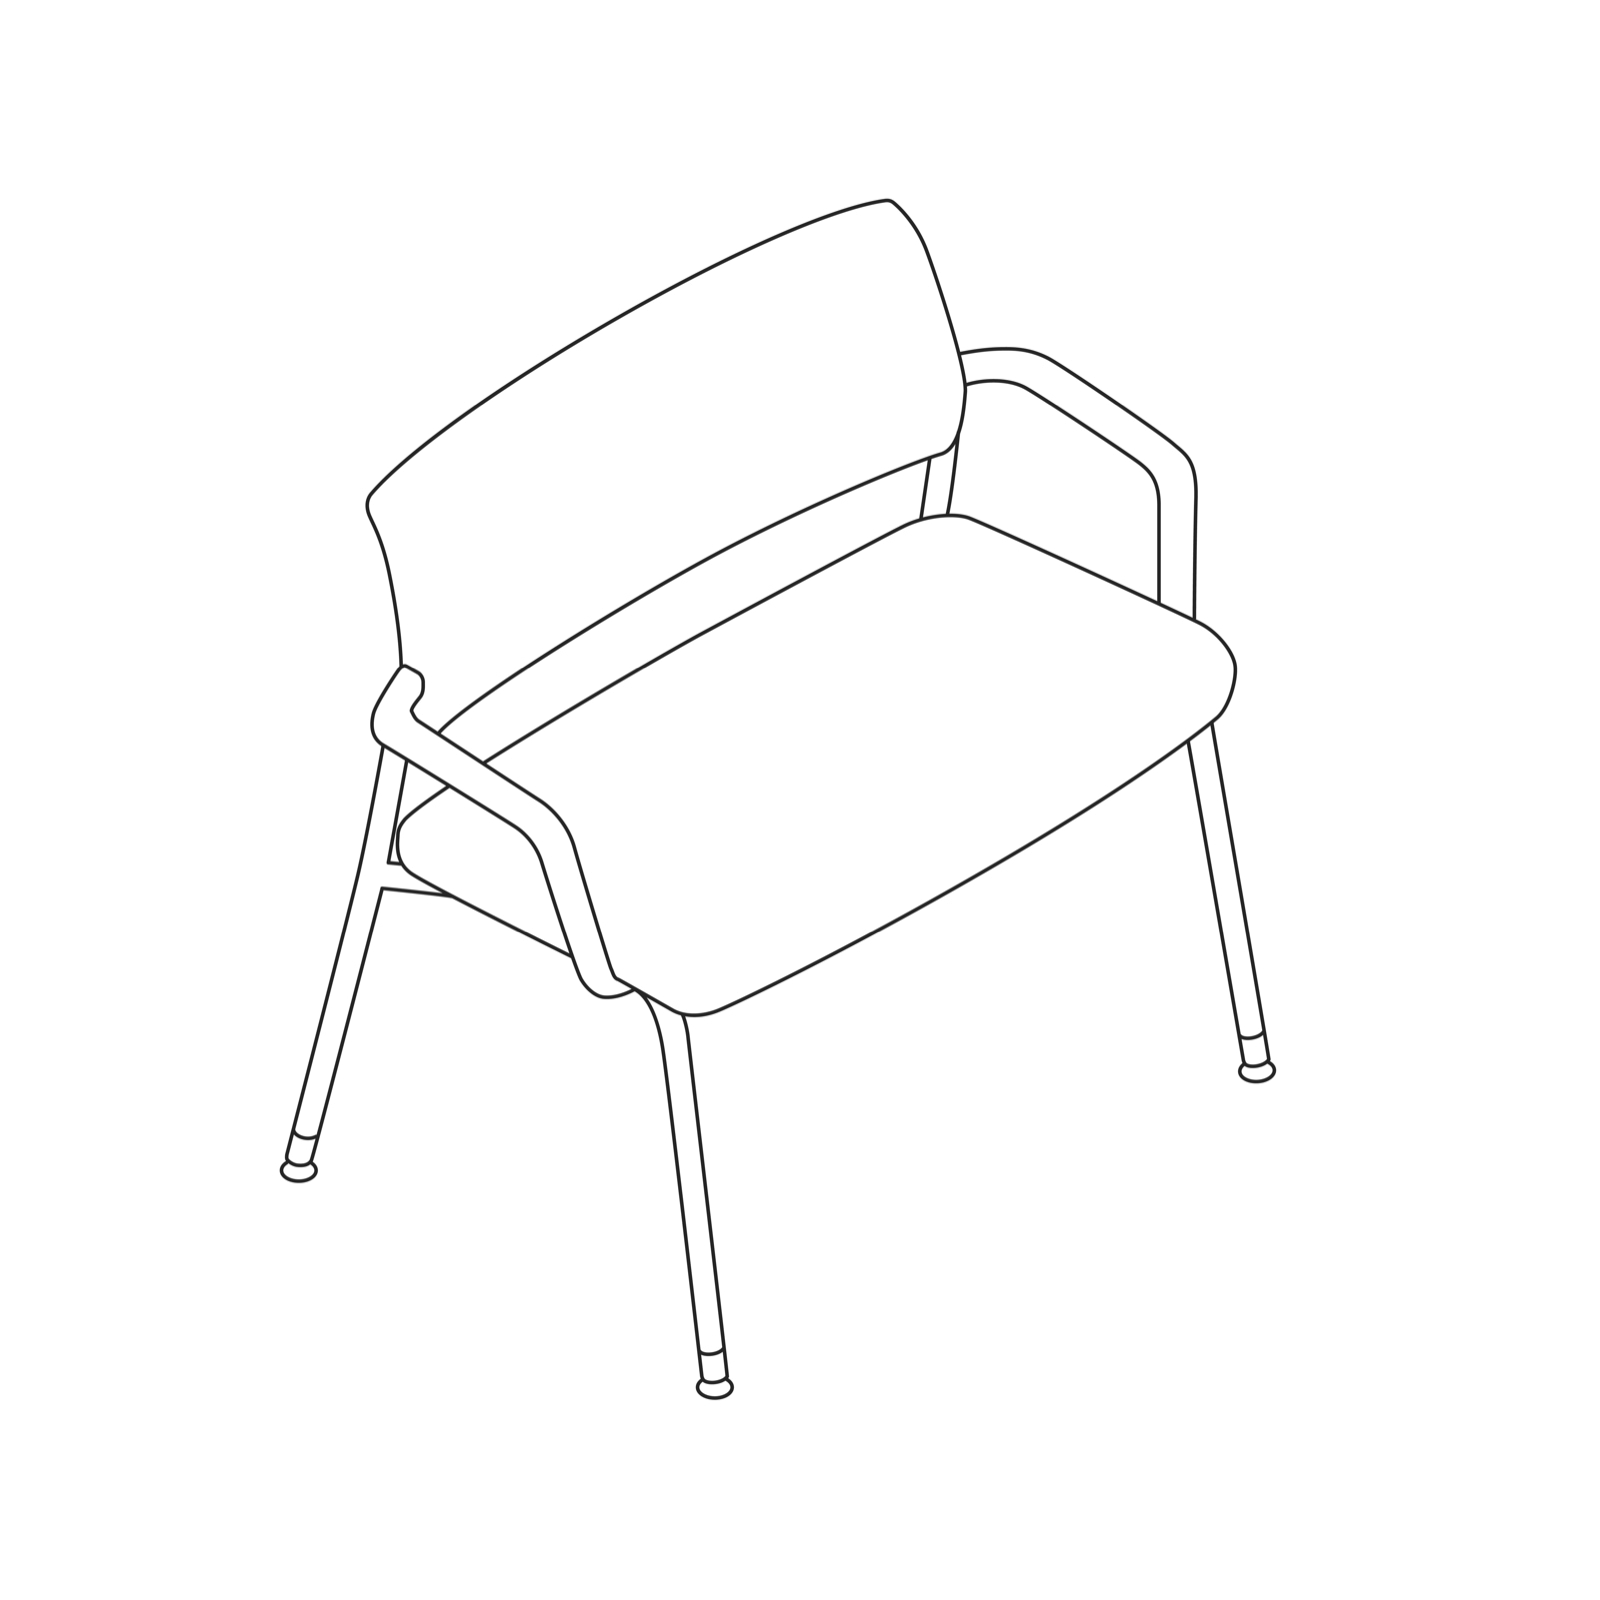 A line drawing of a Verus Plus Chair.